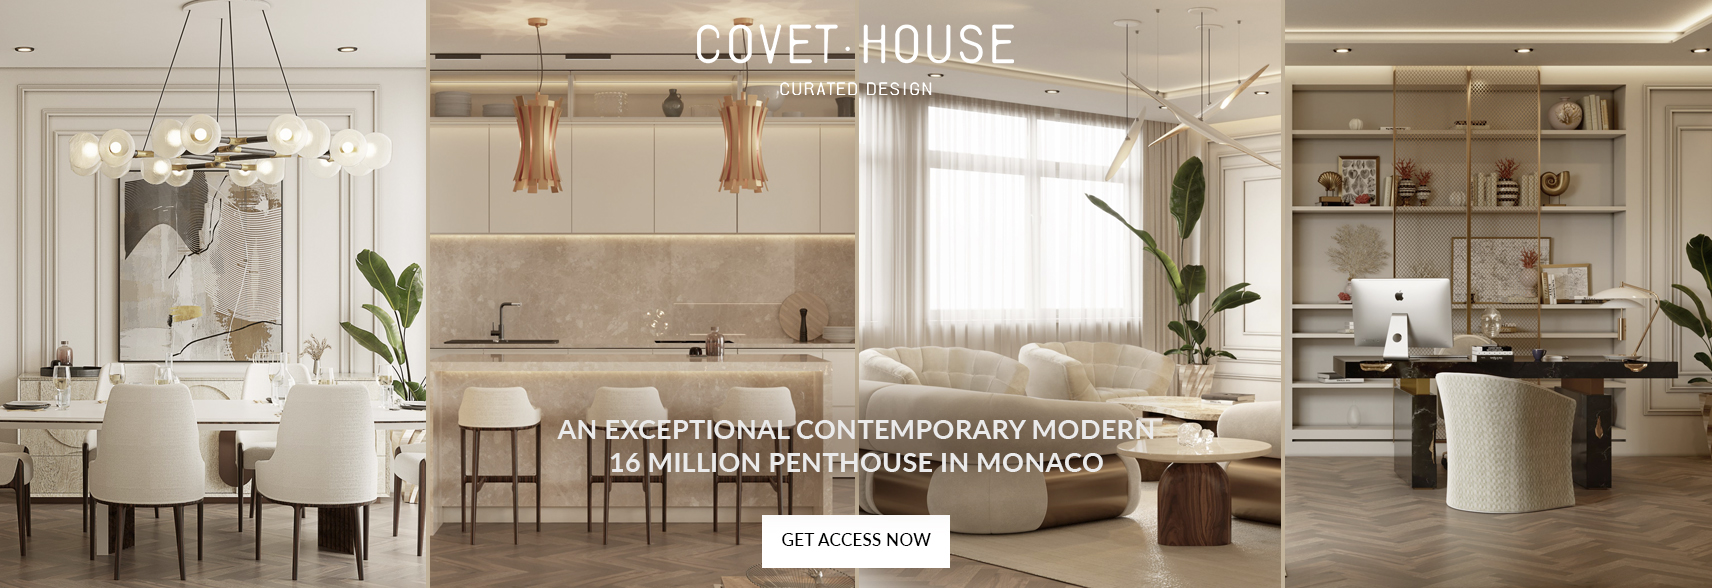 Our Houses Monaco CH living room Covet London: Step Inside This Luxurious Living Room  CH 2001